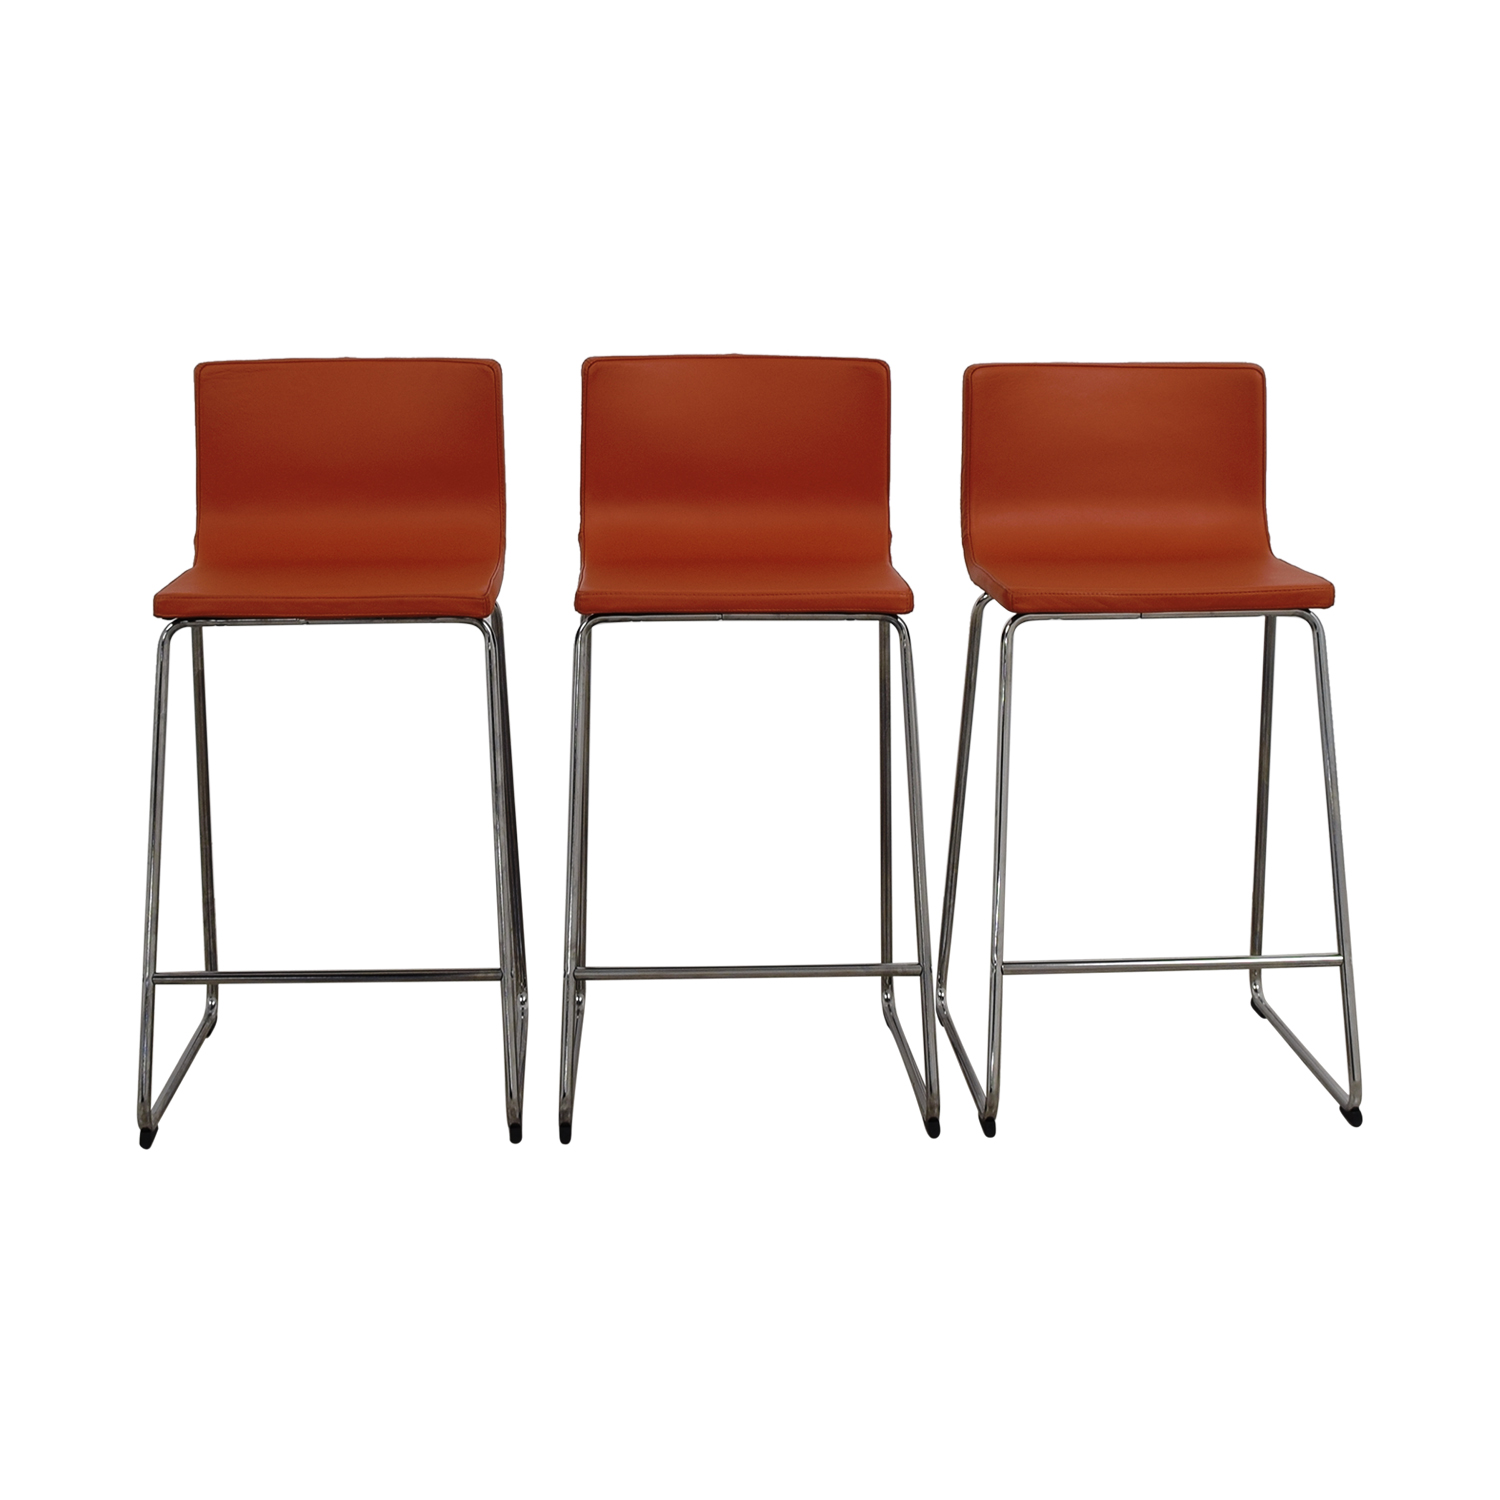 Buy IKEA Bernhard Orange Bar Stools IKEA Stools